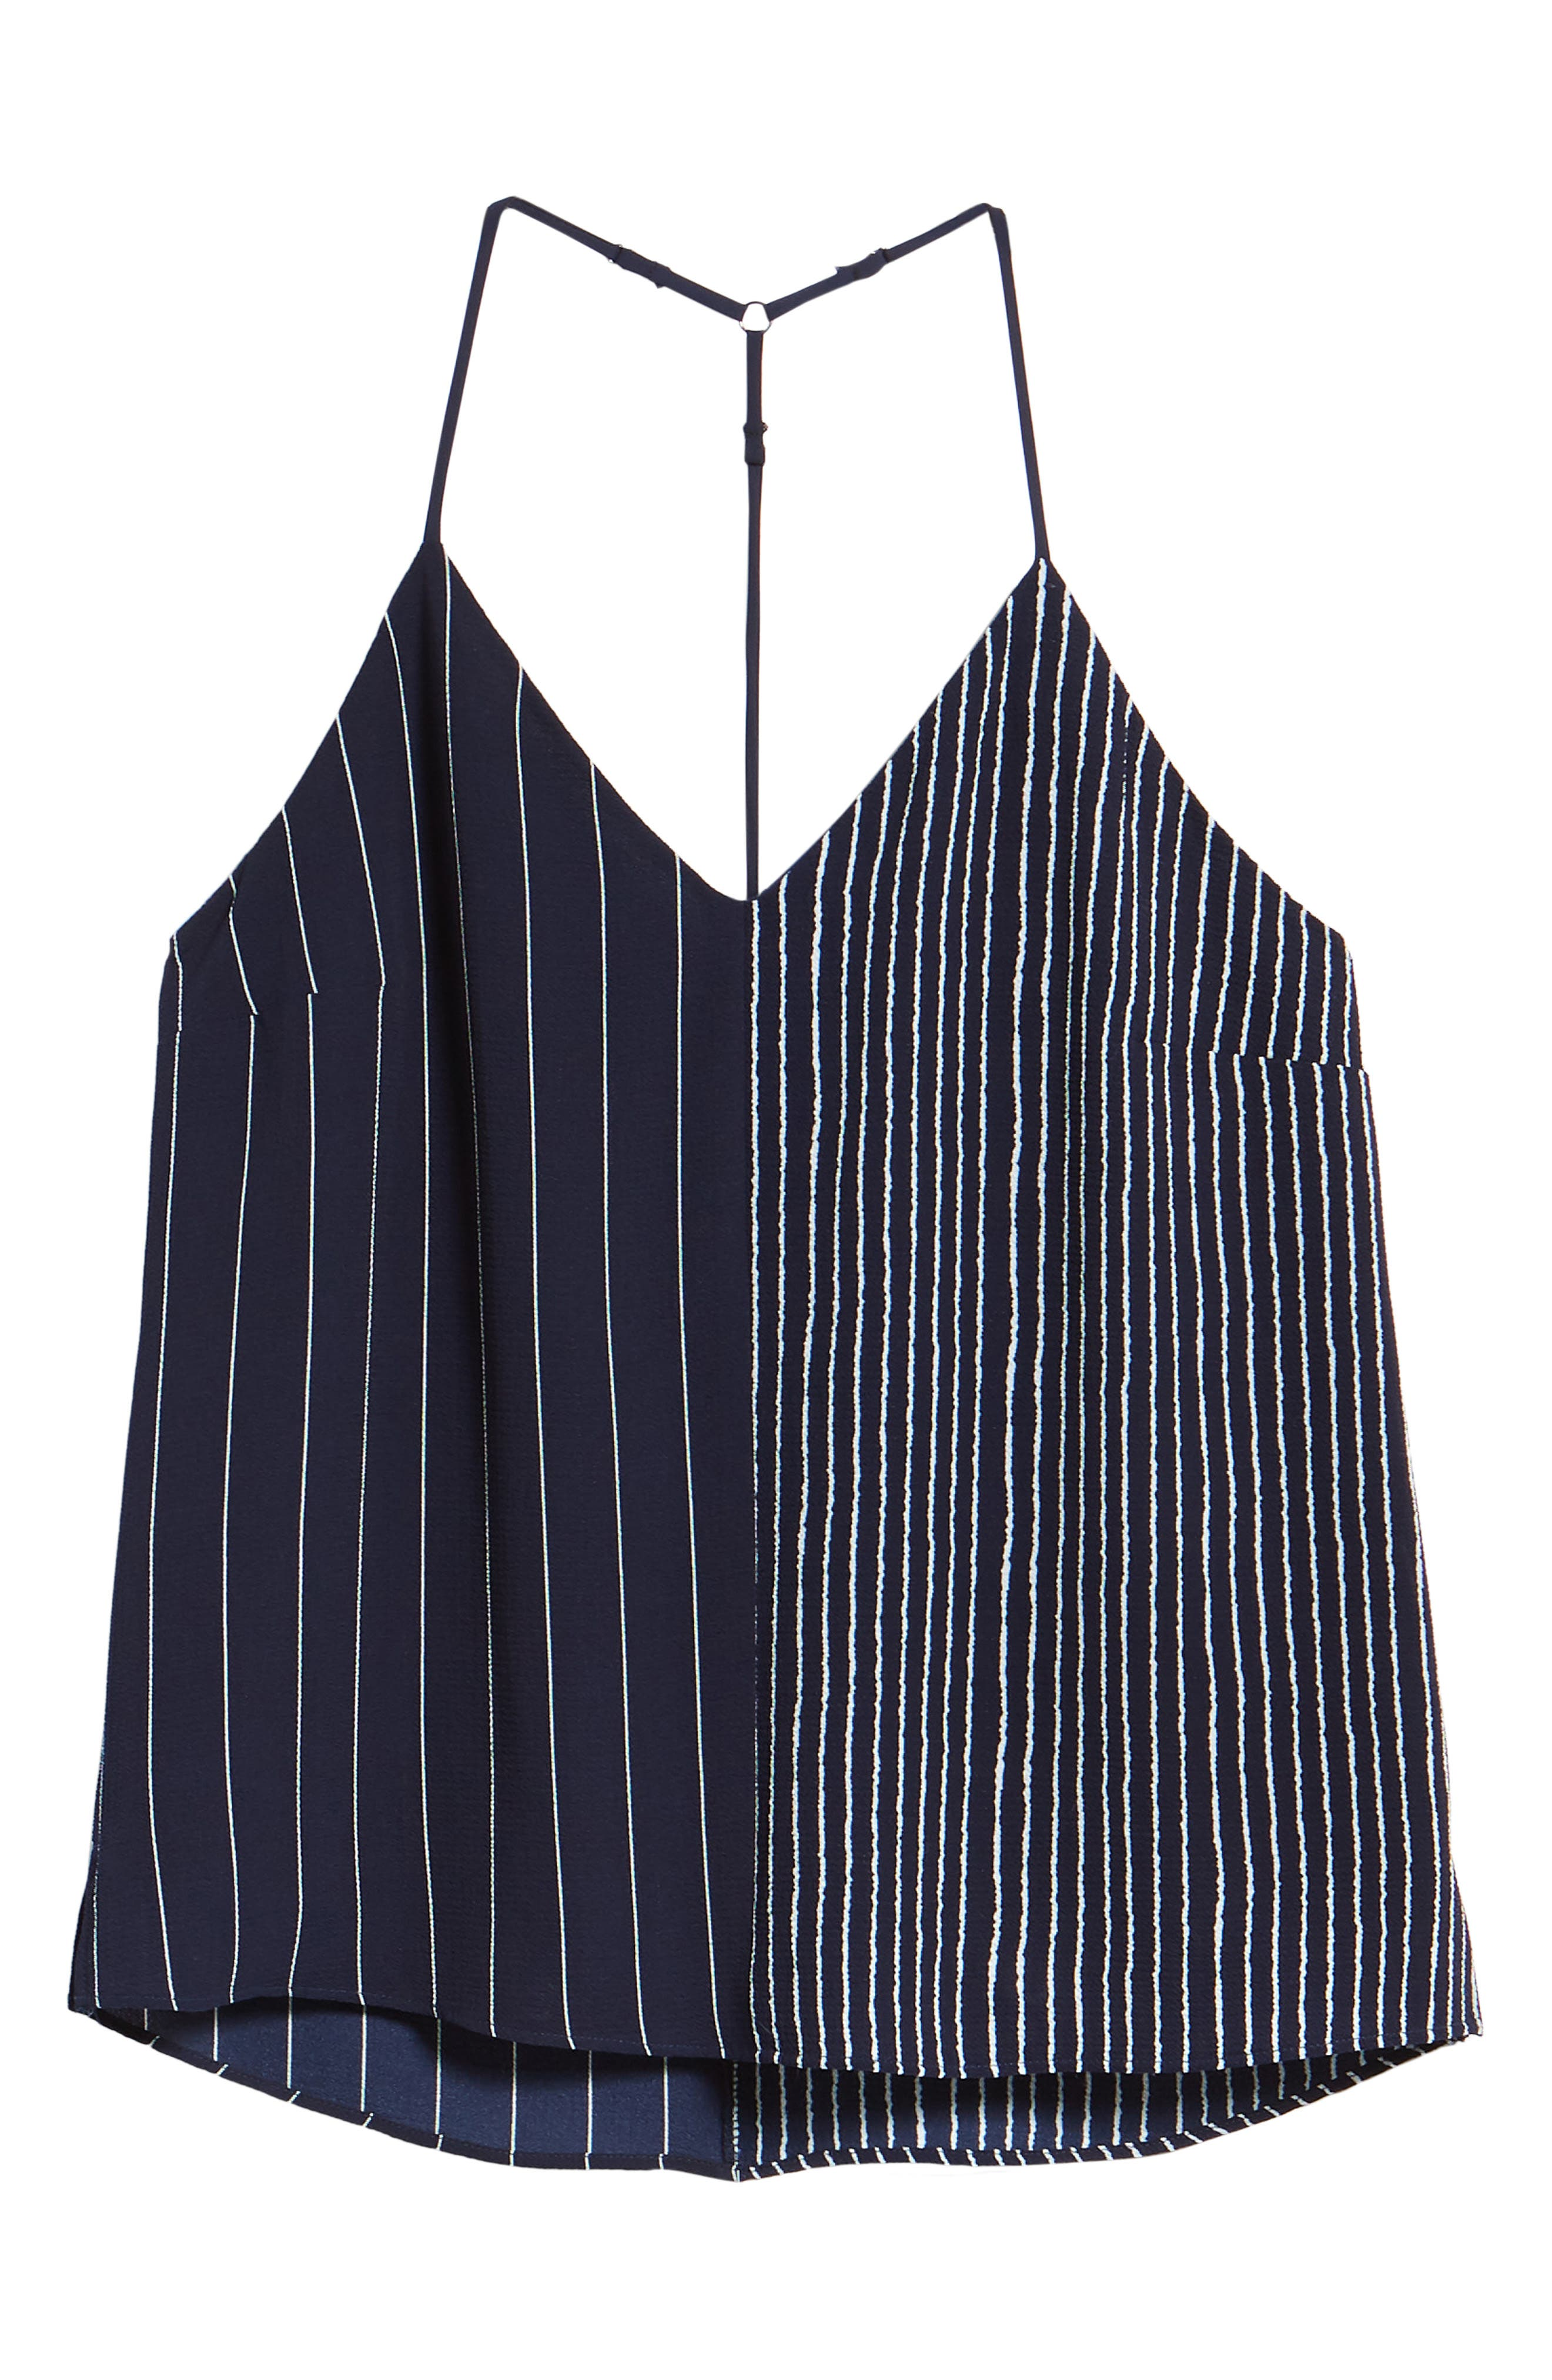 Mix Stripe Camisole,                             Alternate thumbnail 6, color,                             Navy/ White